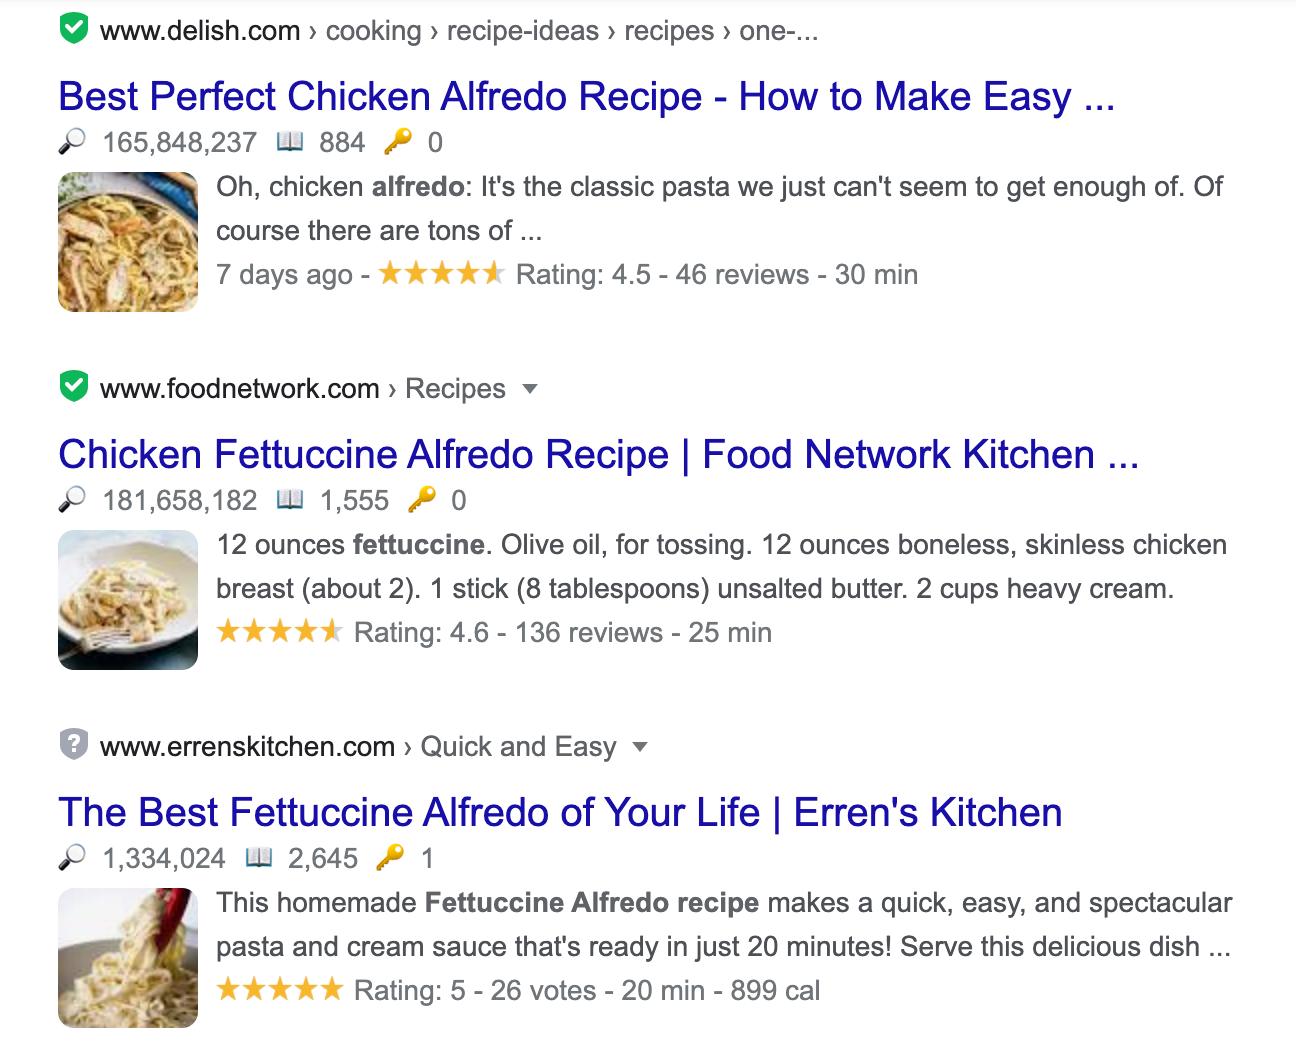 recipe rich snippets